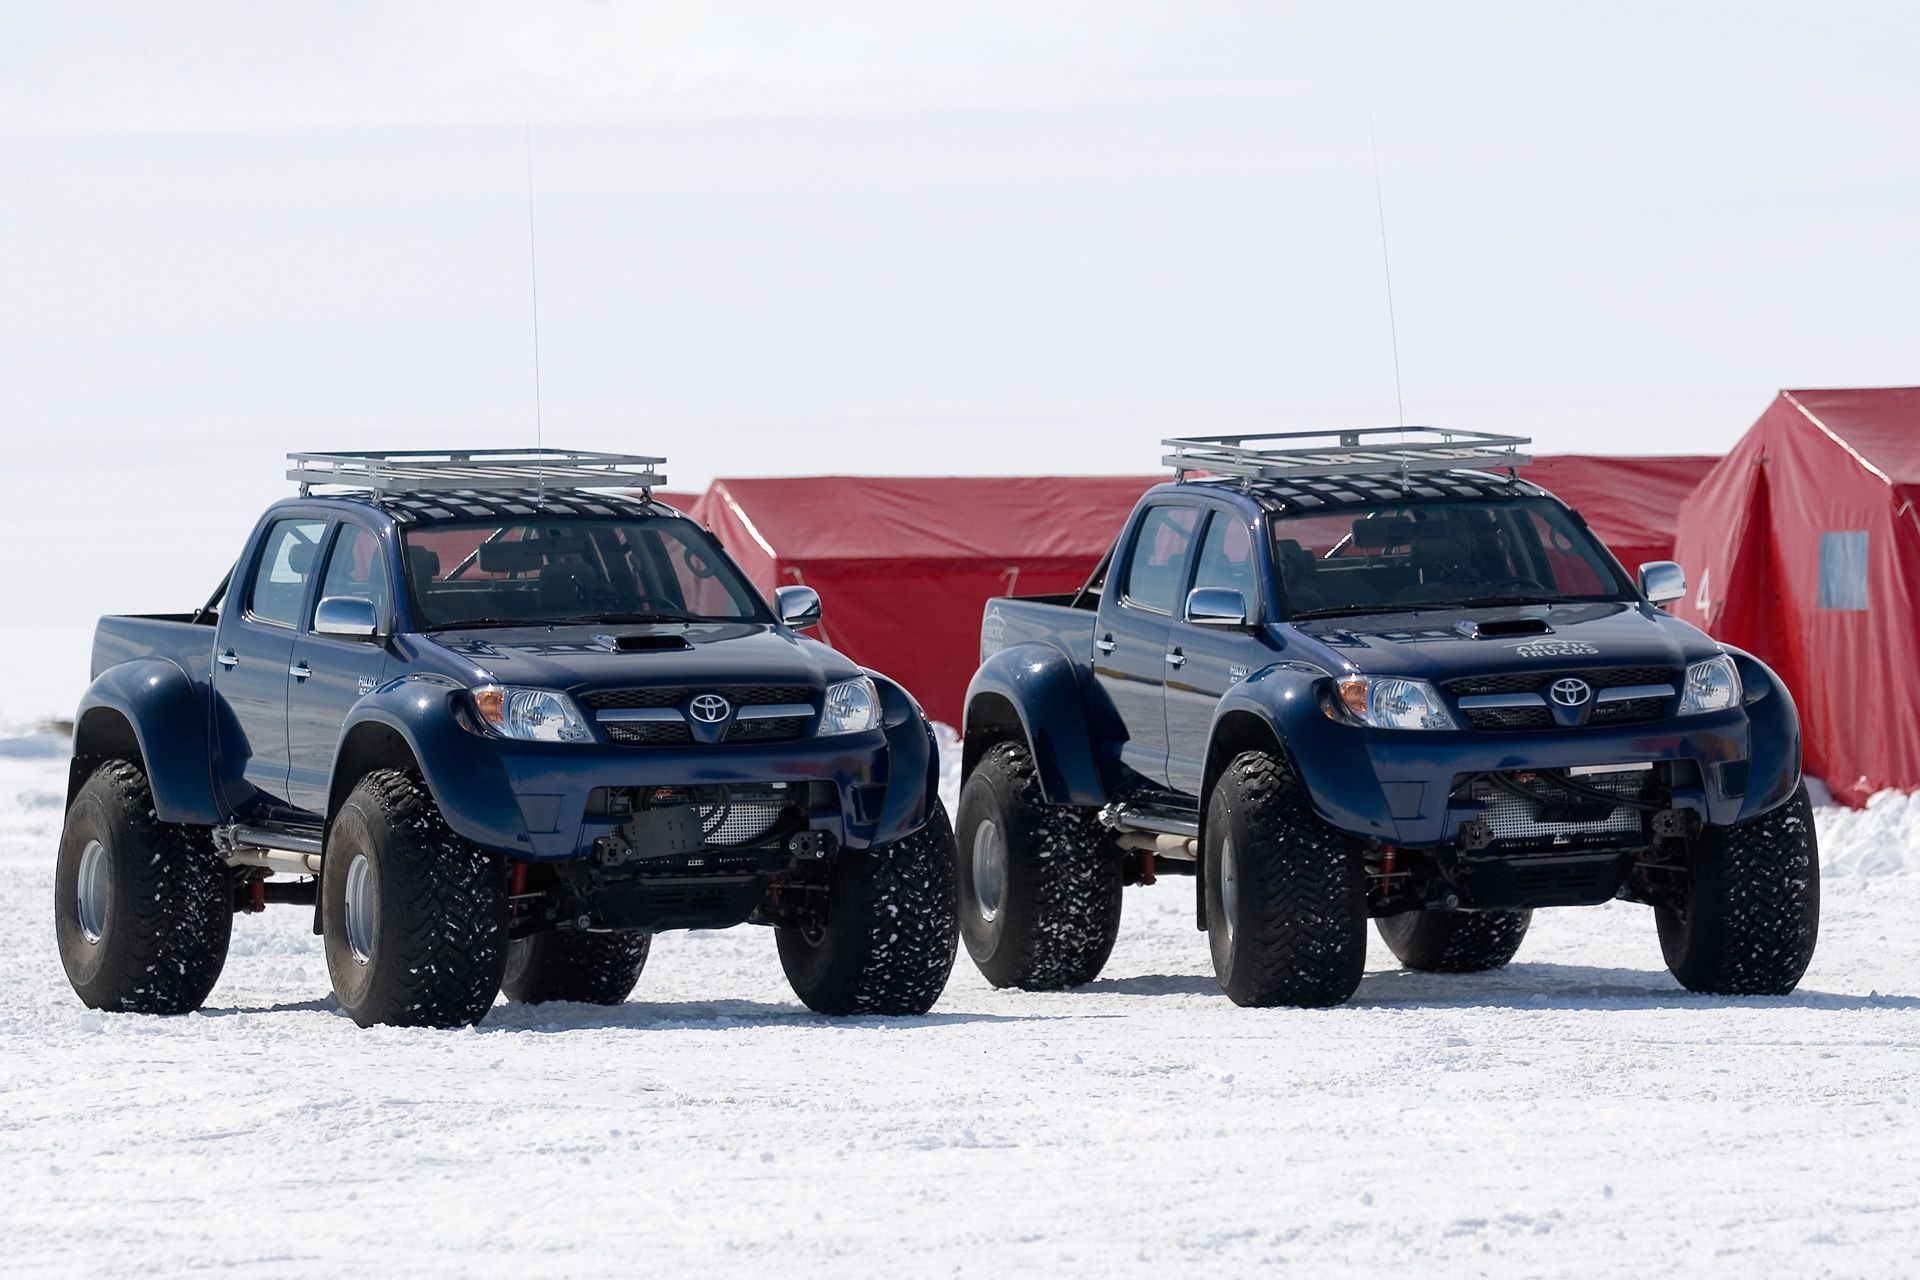 Arctic trucks toyota hilux photo 61474 loox pinterest arctic trucks toyota hilux photo 61474 sciox Choice Image